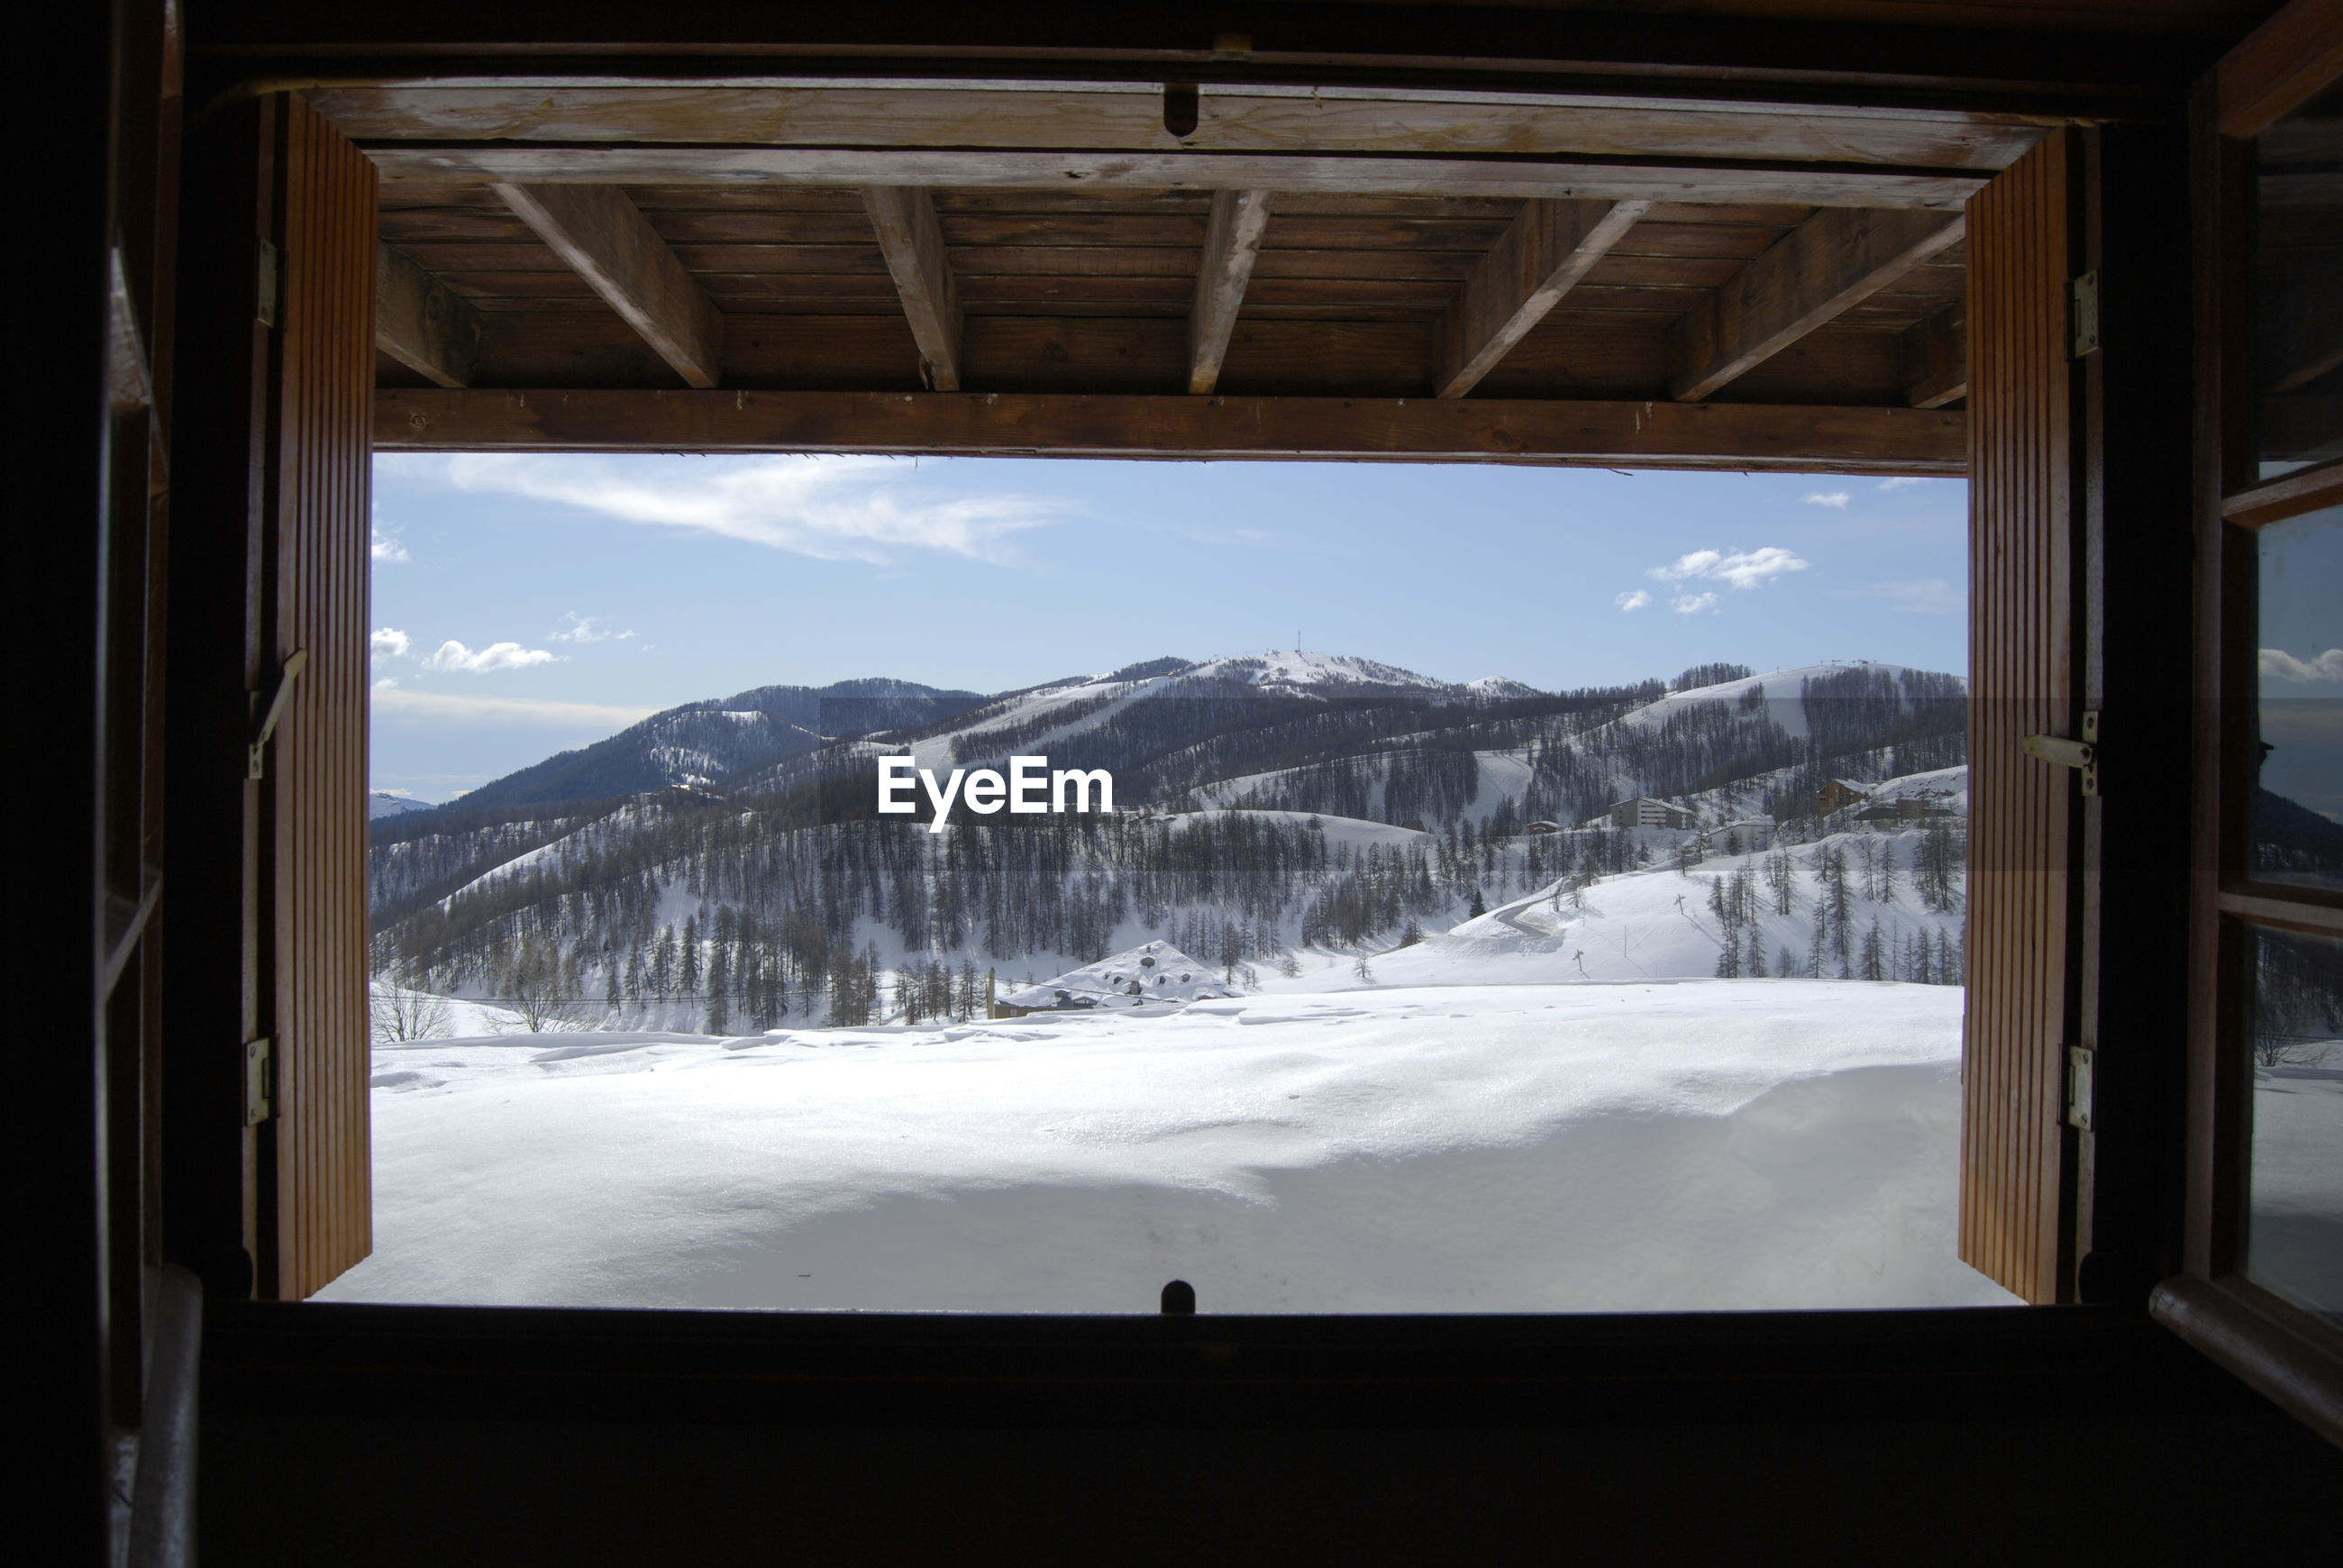 SCENIC VIEW OF SNOWCAPPED MOUNTAINS SEEN FROM WINDOW